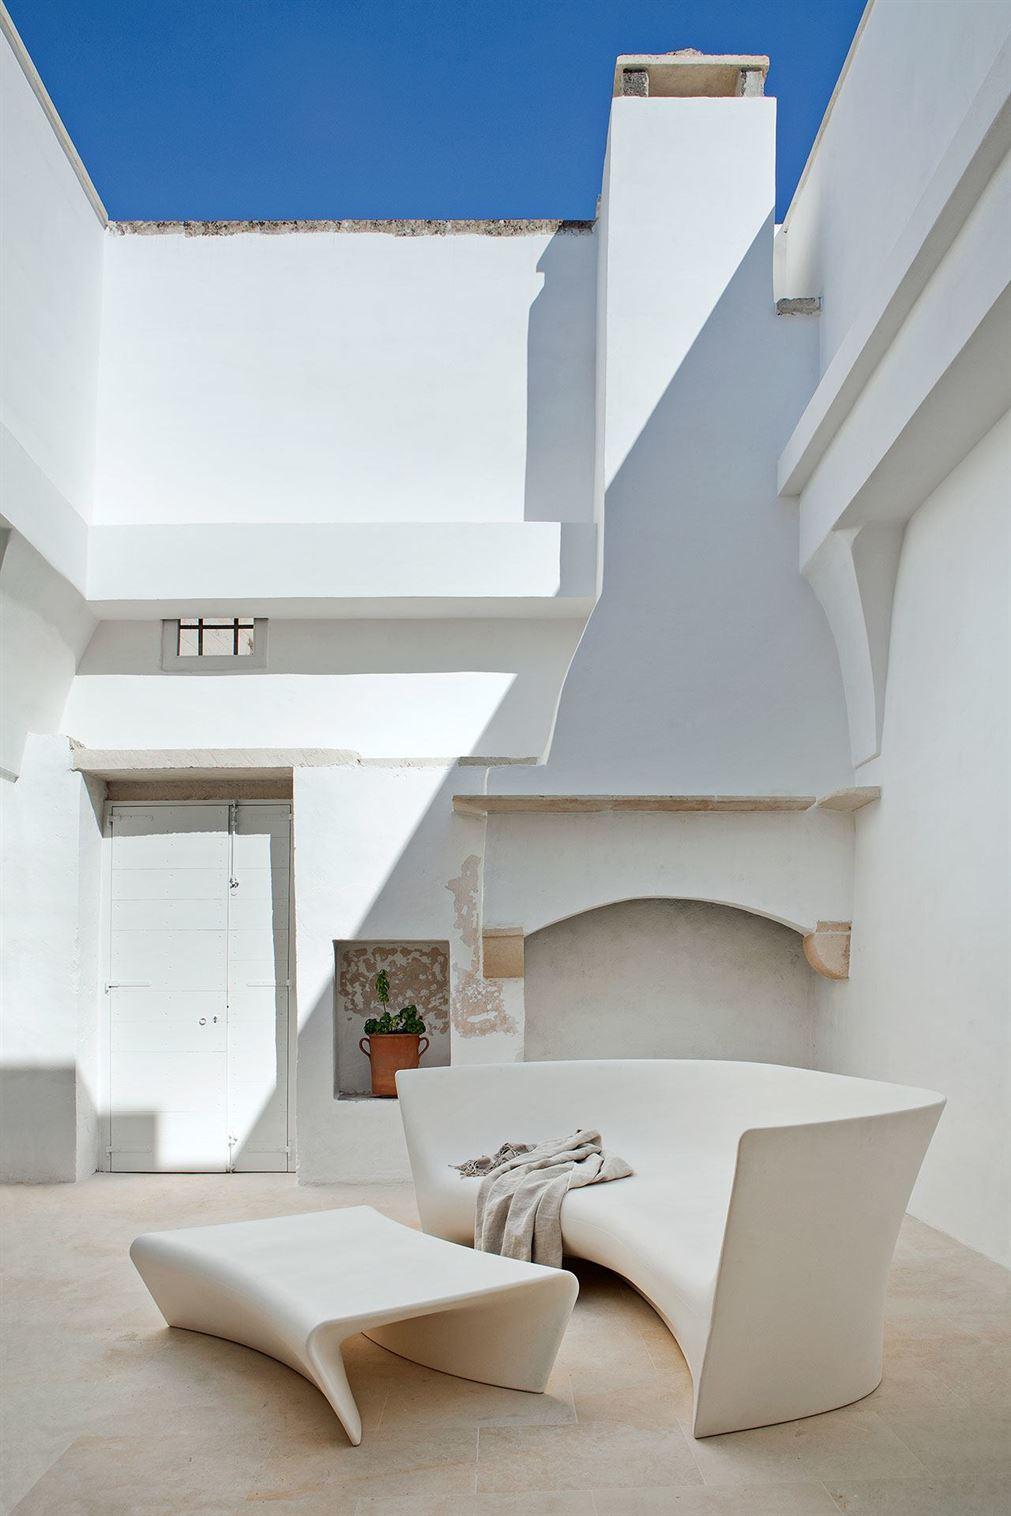 f1_palomba_serafini_house_salento_photo_francesco_bolis_yatzer